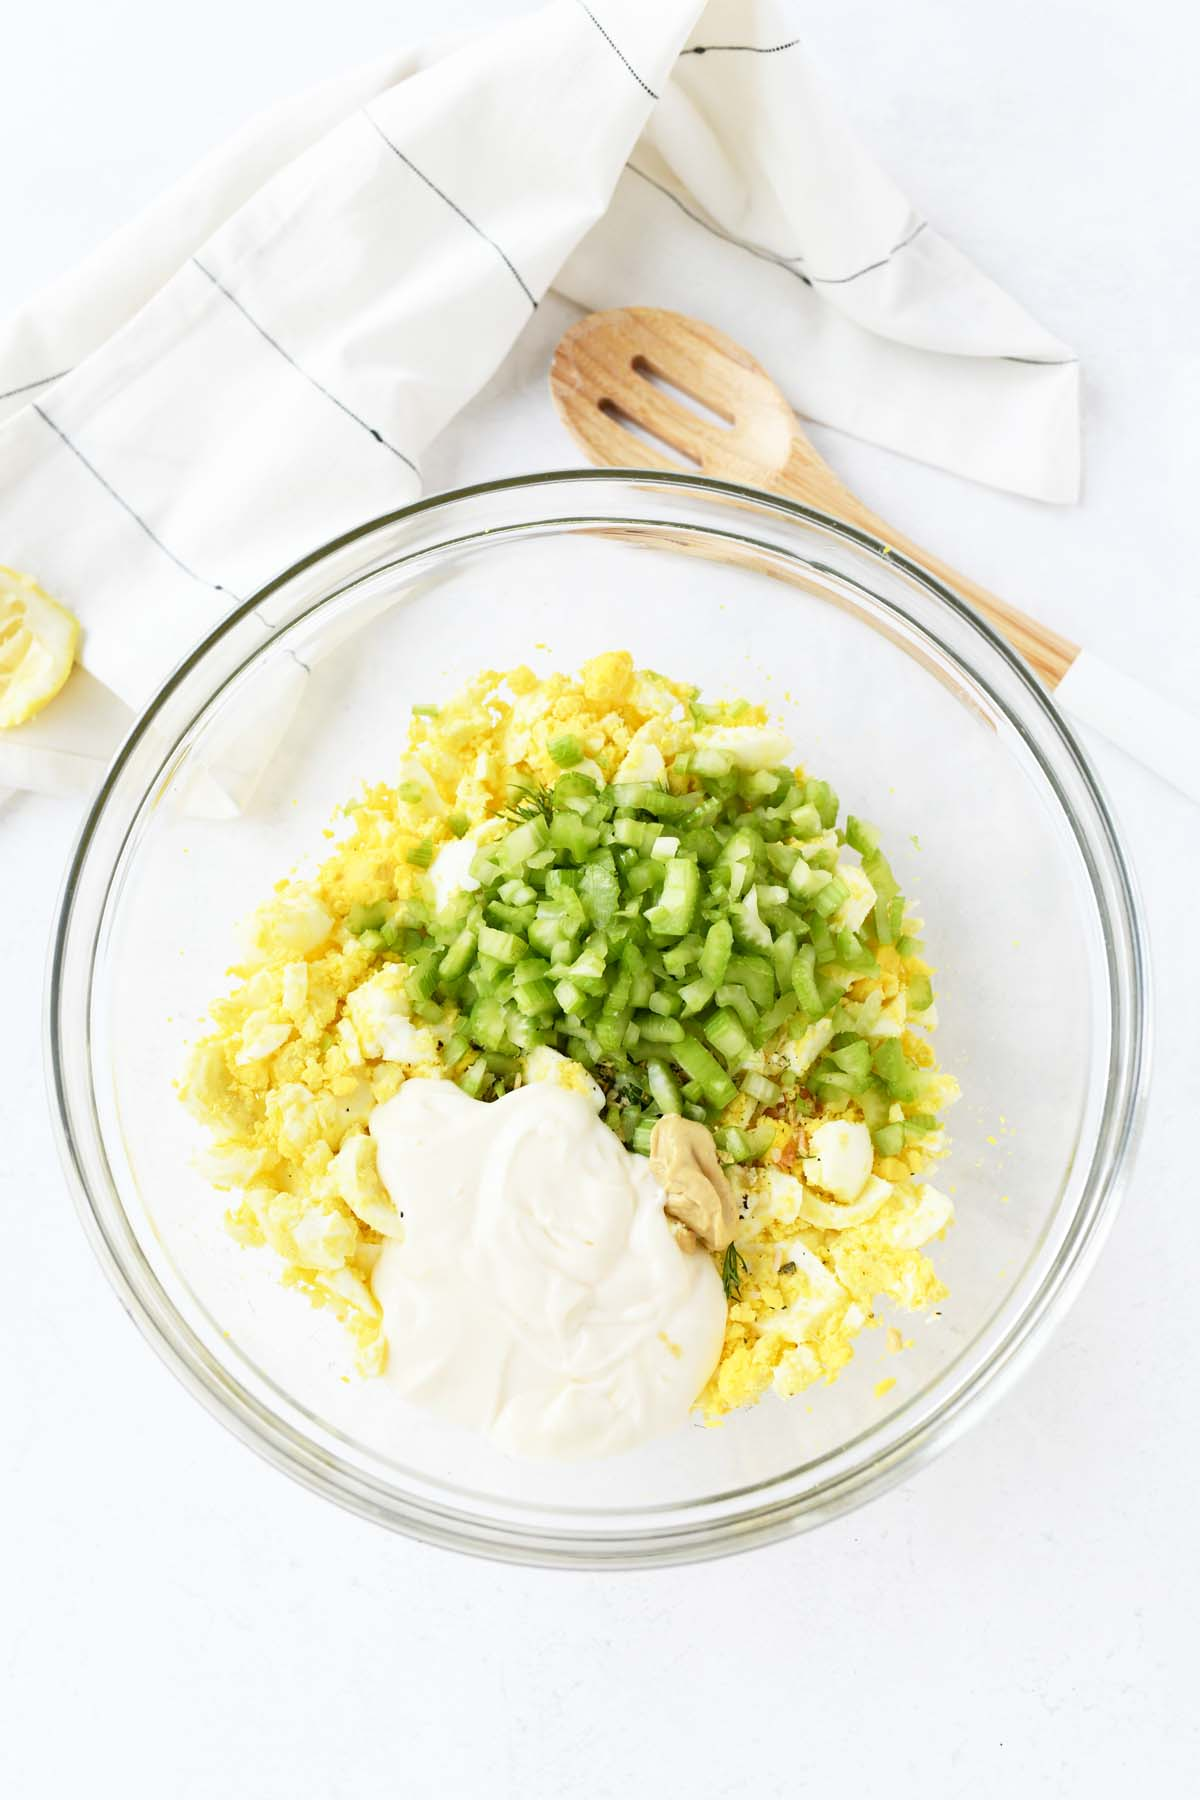 Egg salad ingredients in a bowl on a white table.